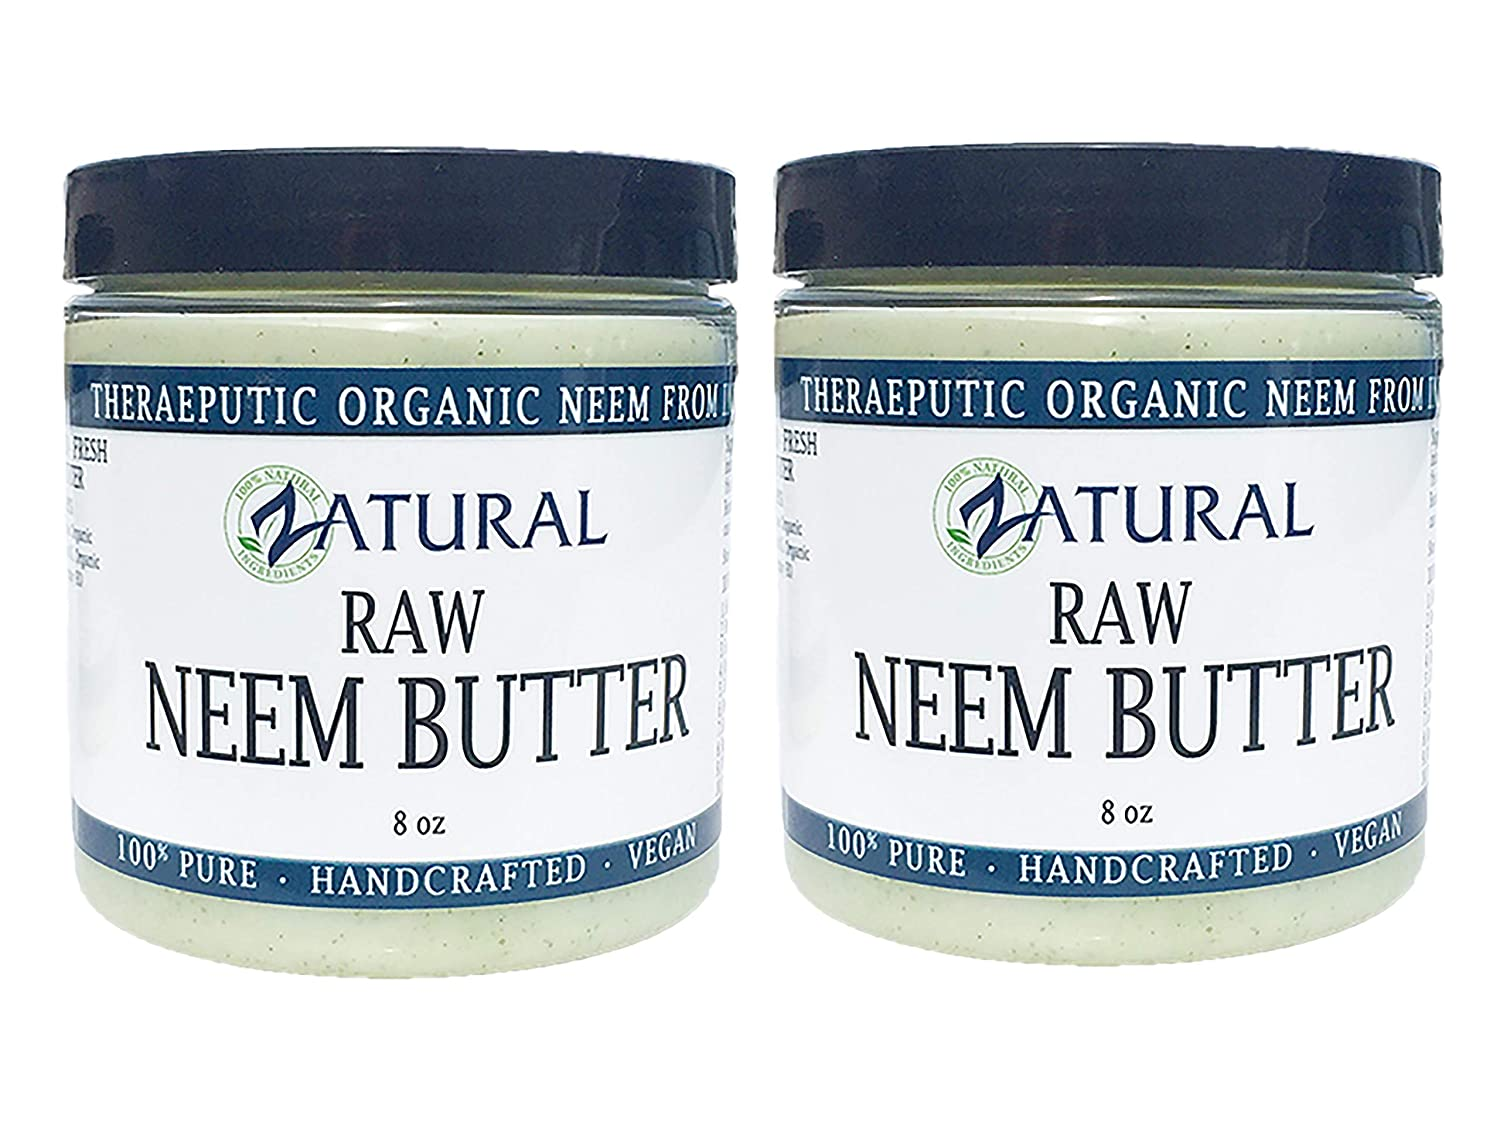 Organic Neem Butter-Coconut Oil, Neem Oil, Neem Leaf, Marula Oil, Kokum Butter, Rosemary (2 Pack)